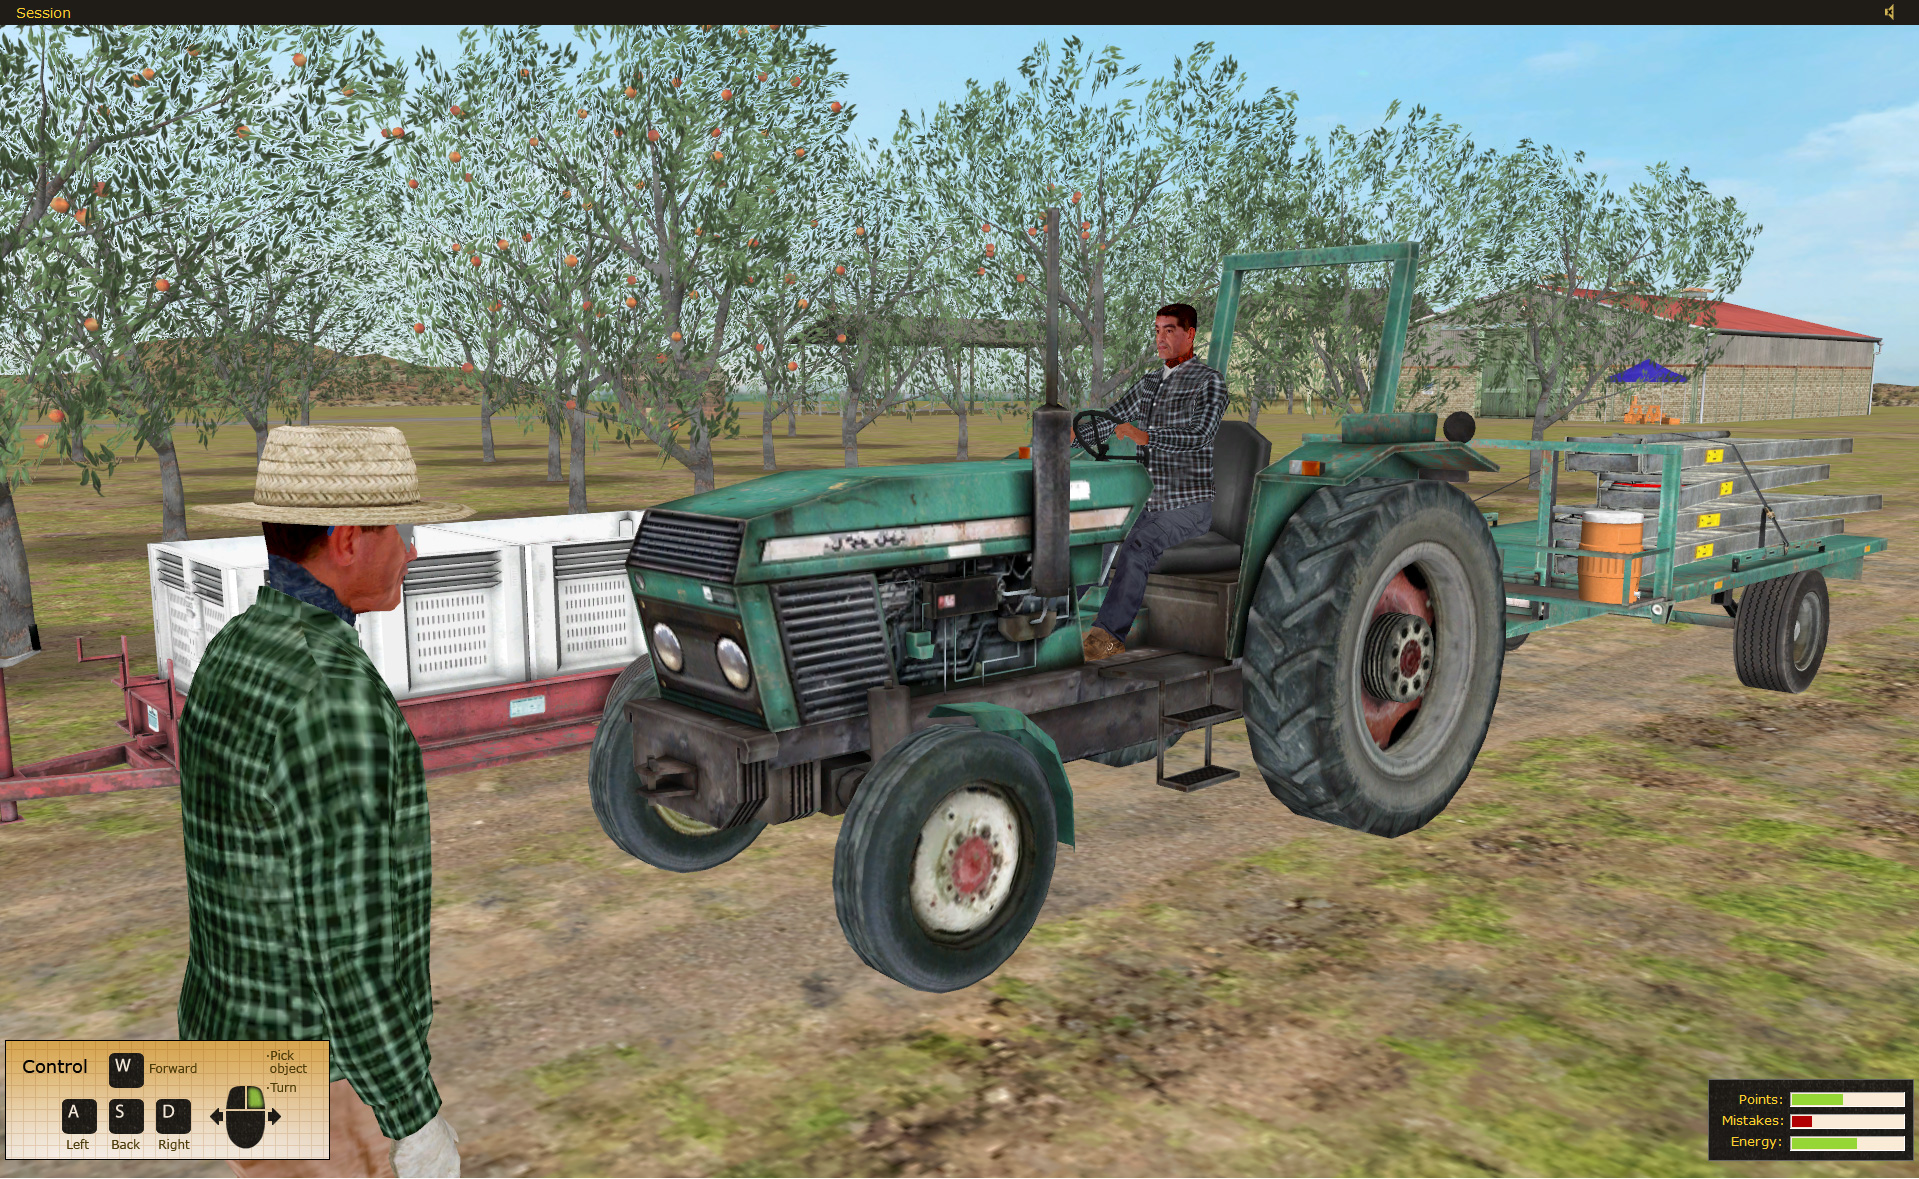 State Compensation Insurance Fund Safety Agricultural Safety Training Simulator by ForgeFX Simulations